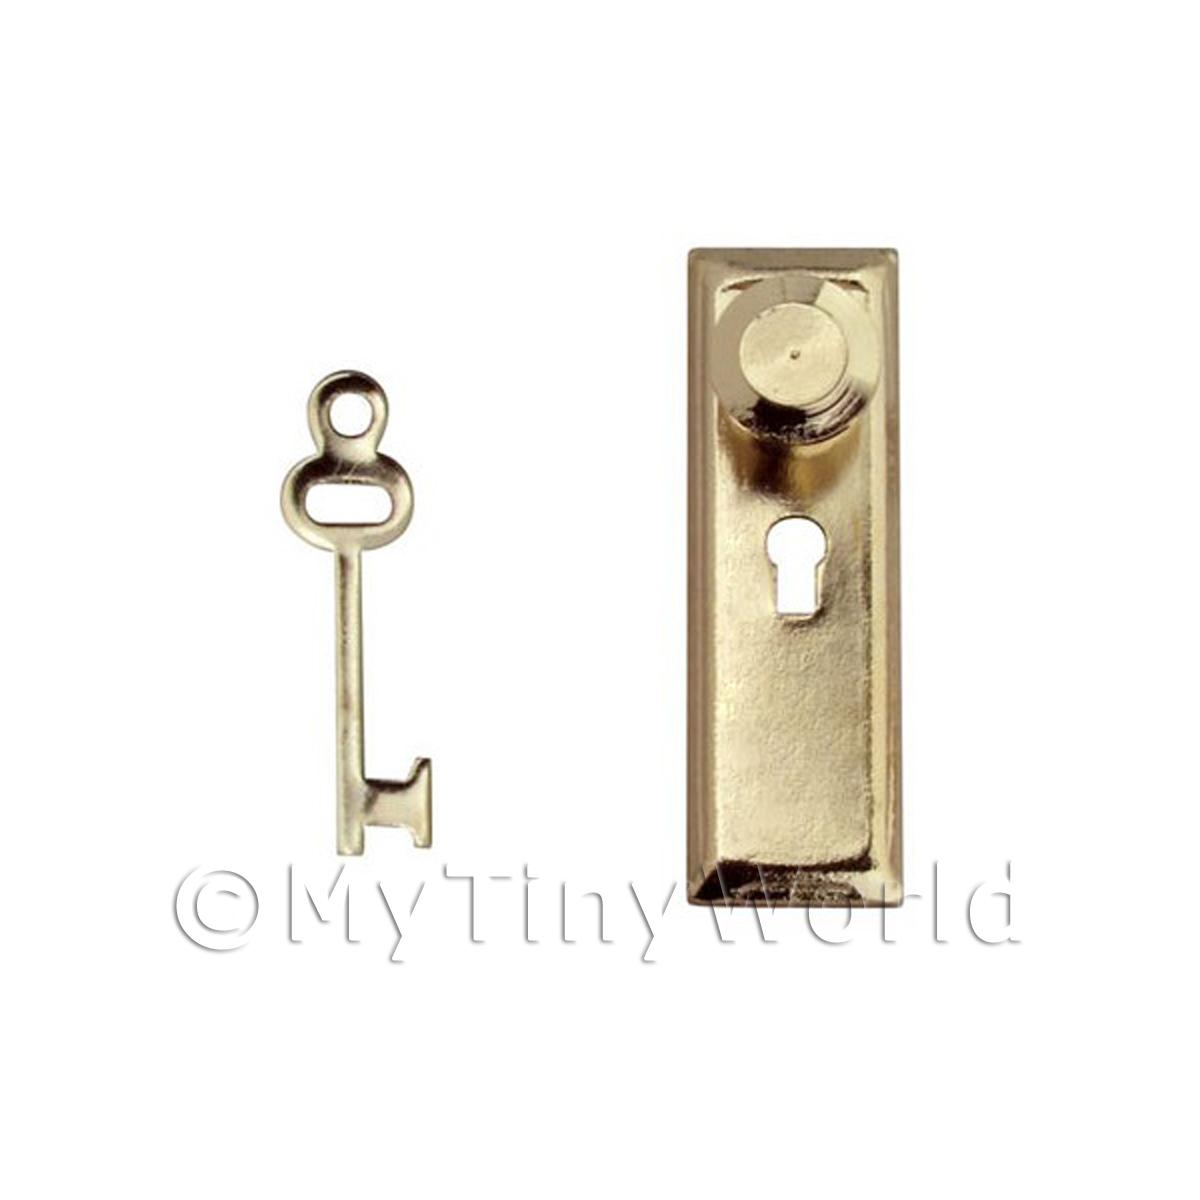 Dolls House Miniature 1:12th Scale Door Handle With Keyhole and Key